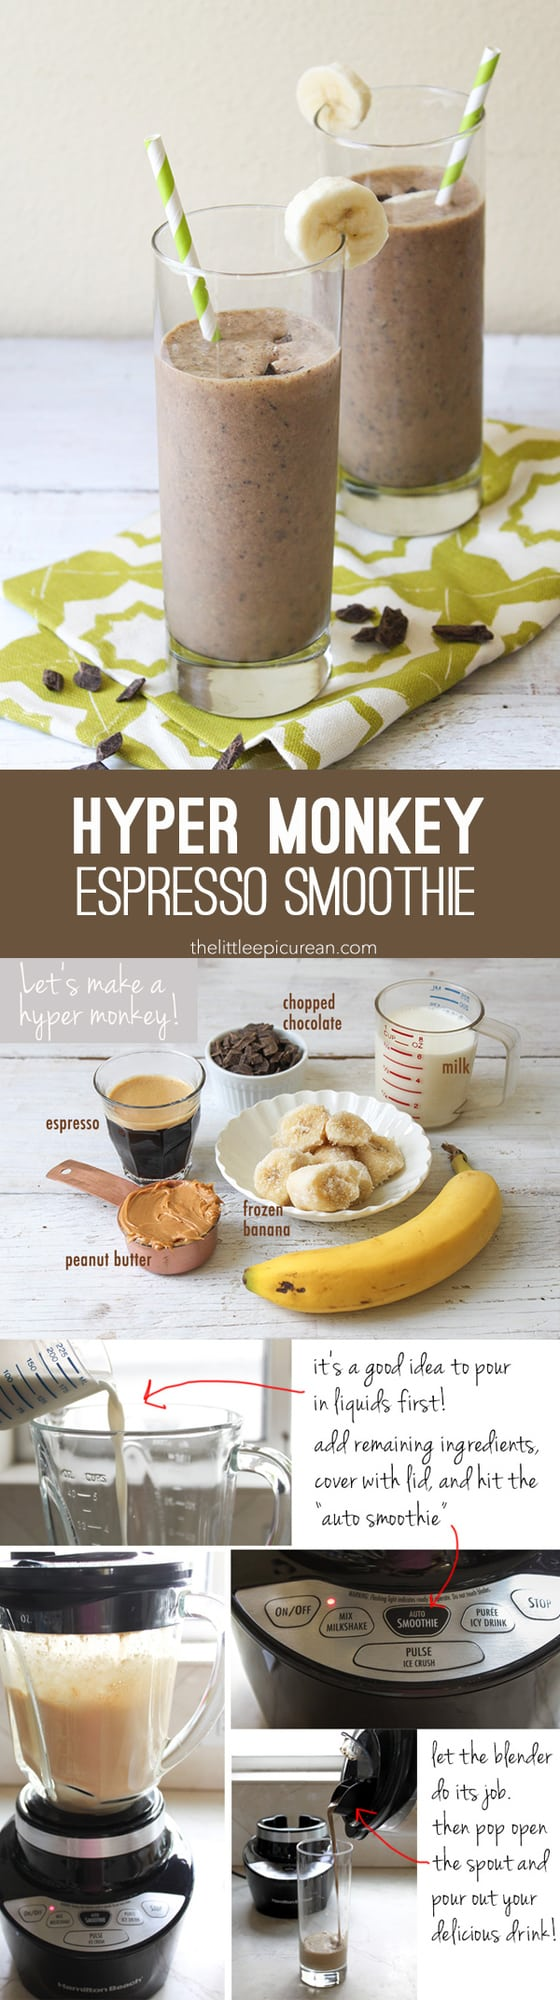 Hyper Monkey Smoothie